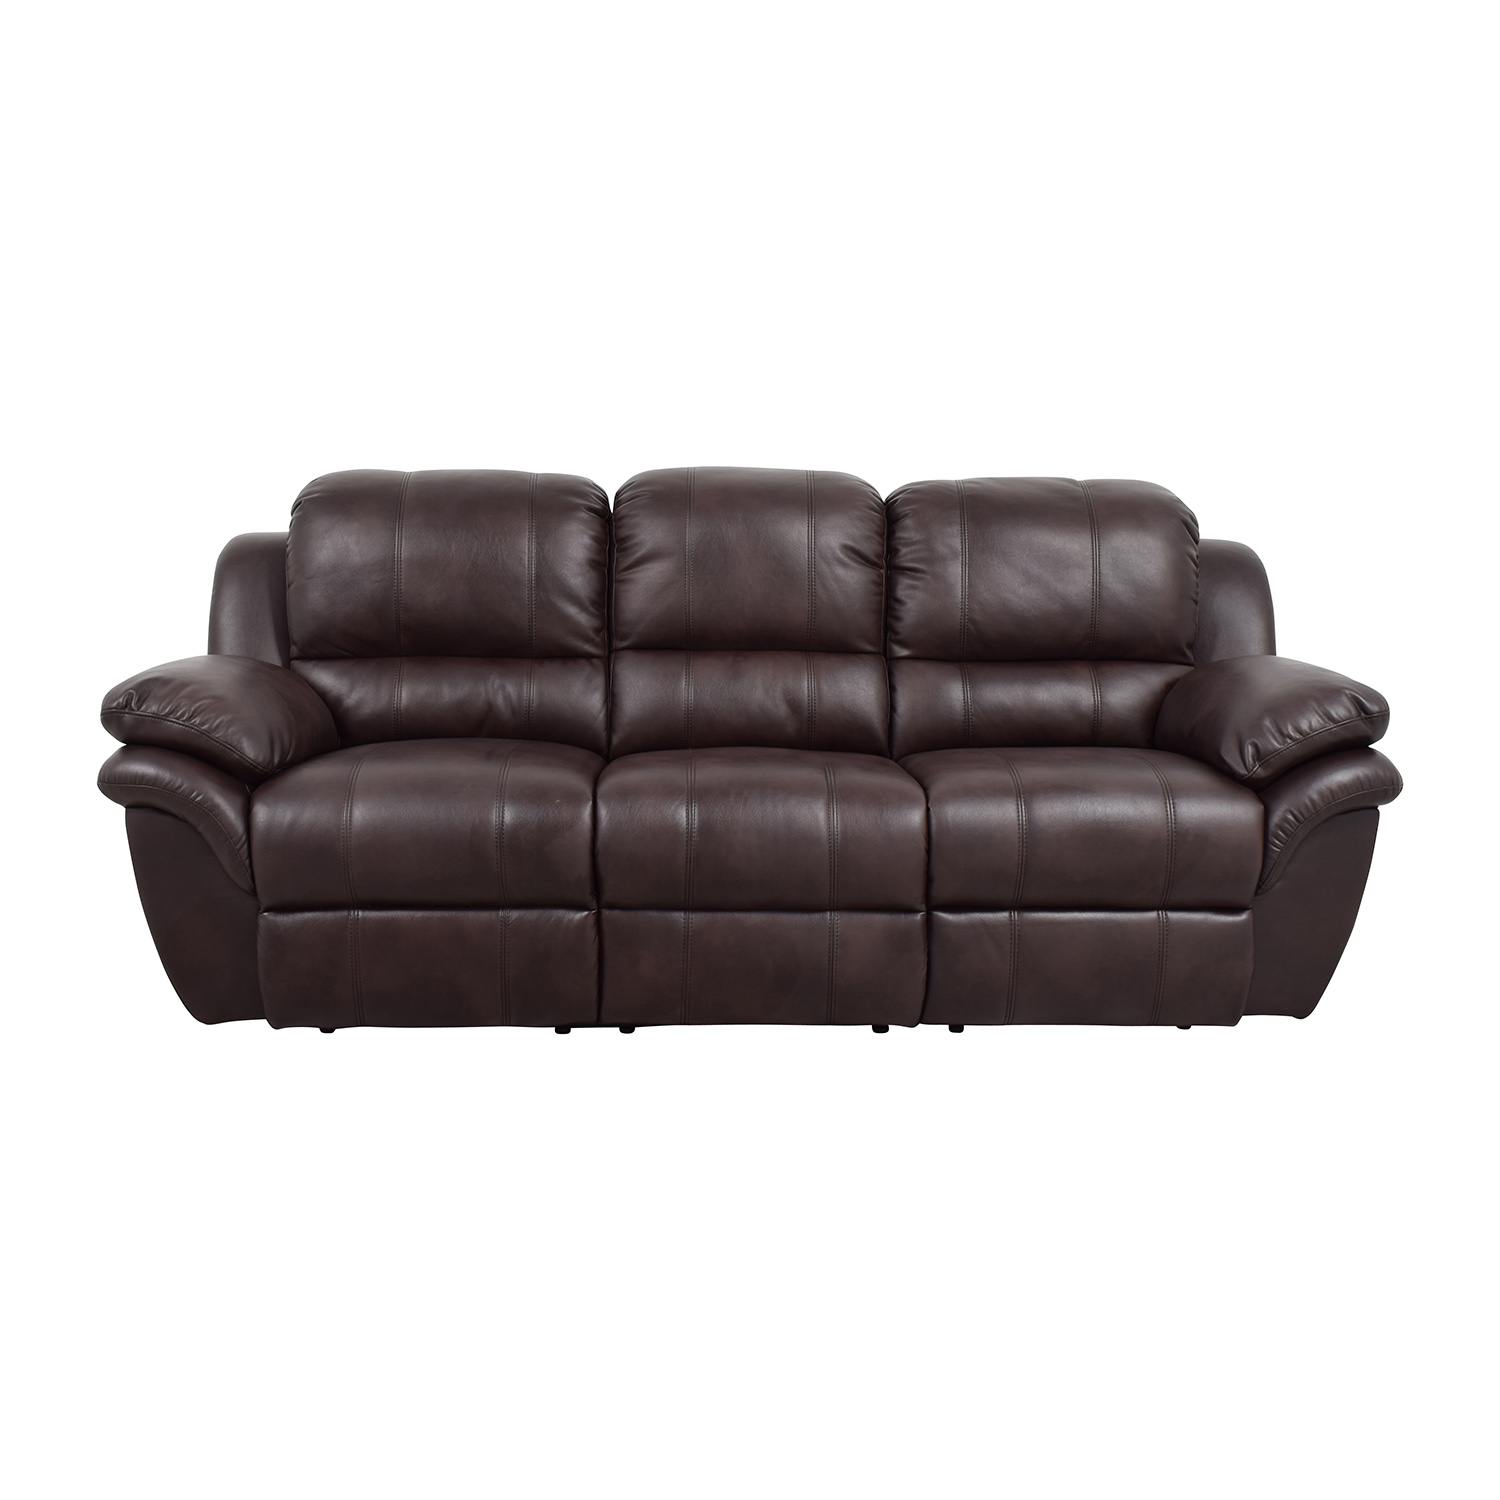 Sale Leather Me Near Couches